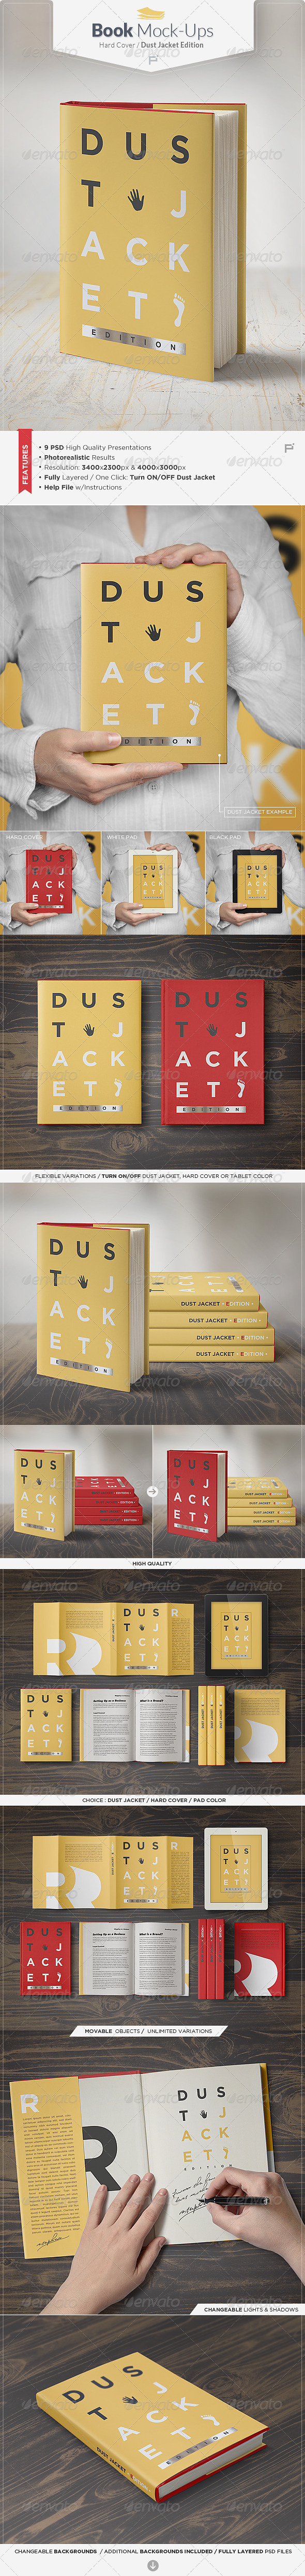 GraphicRiver Book Mock-Up Dust Jacket Edition 7735188